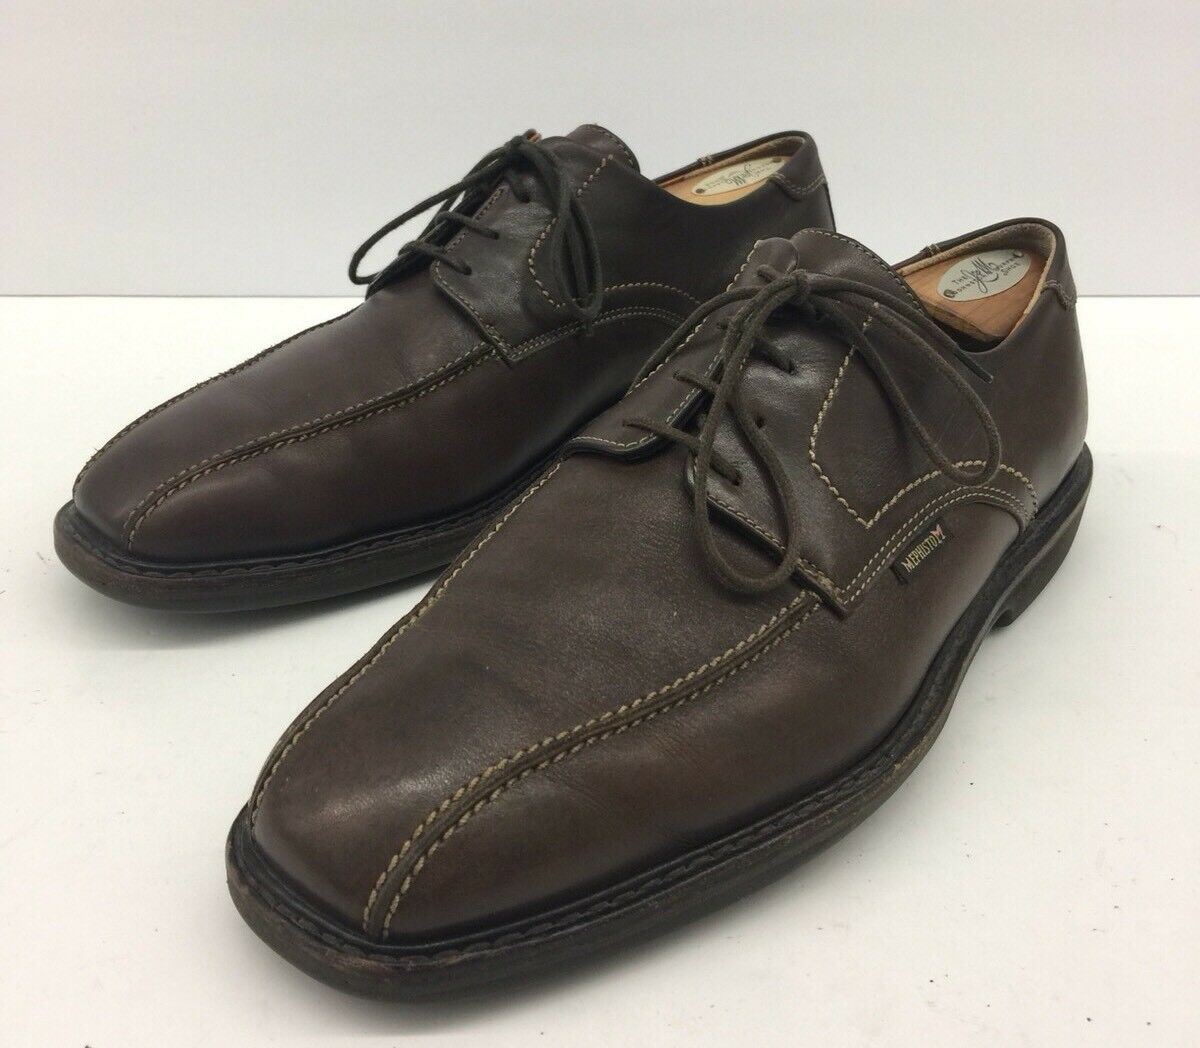 440 MEPHISTO GoodYear Air-Relax Air-Relax Air-Relax Brown Shock Absorber Shoes Uomo Sz 9.5 us d2bfc3